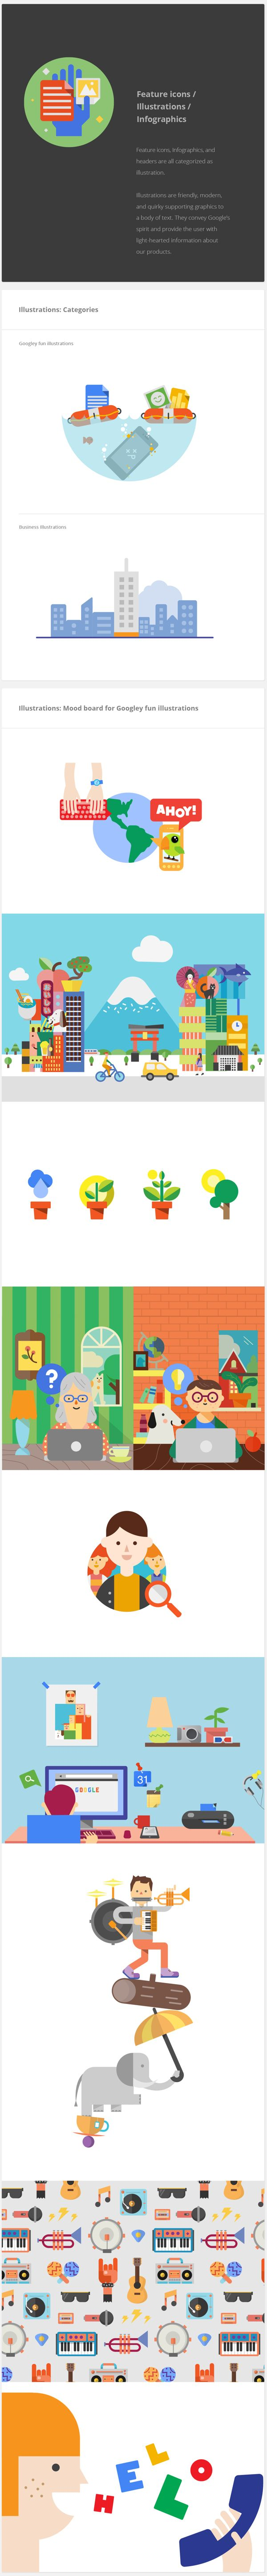 Google Visual Assets Guidelines - Part 2 by Roger Oddone, via Behance